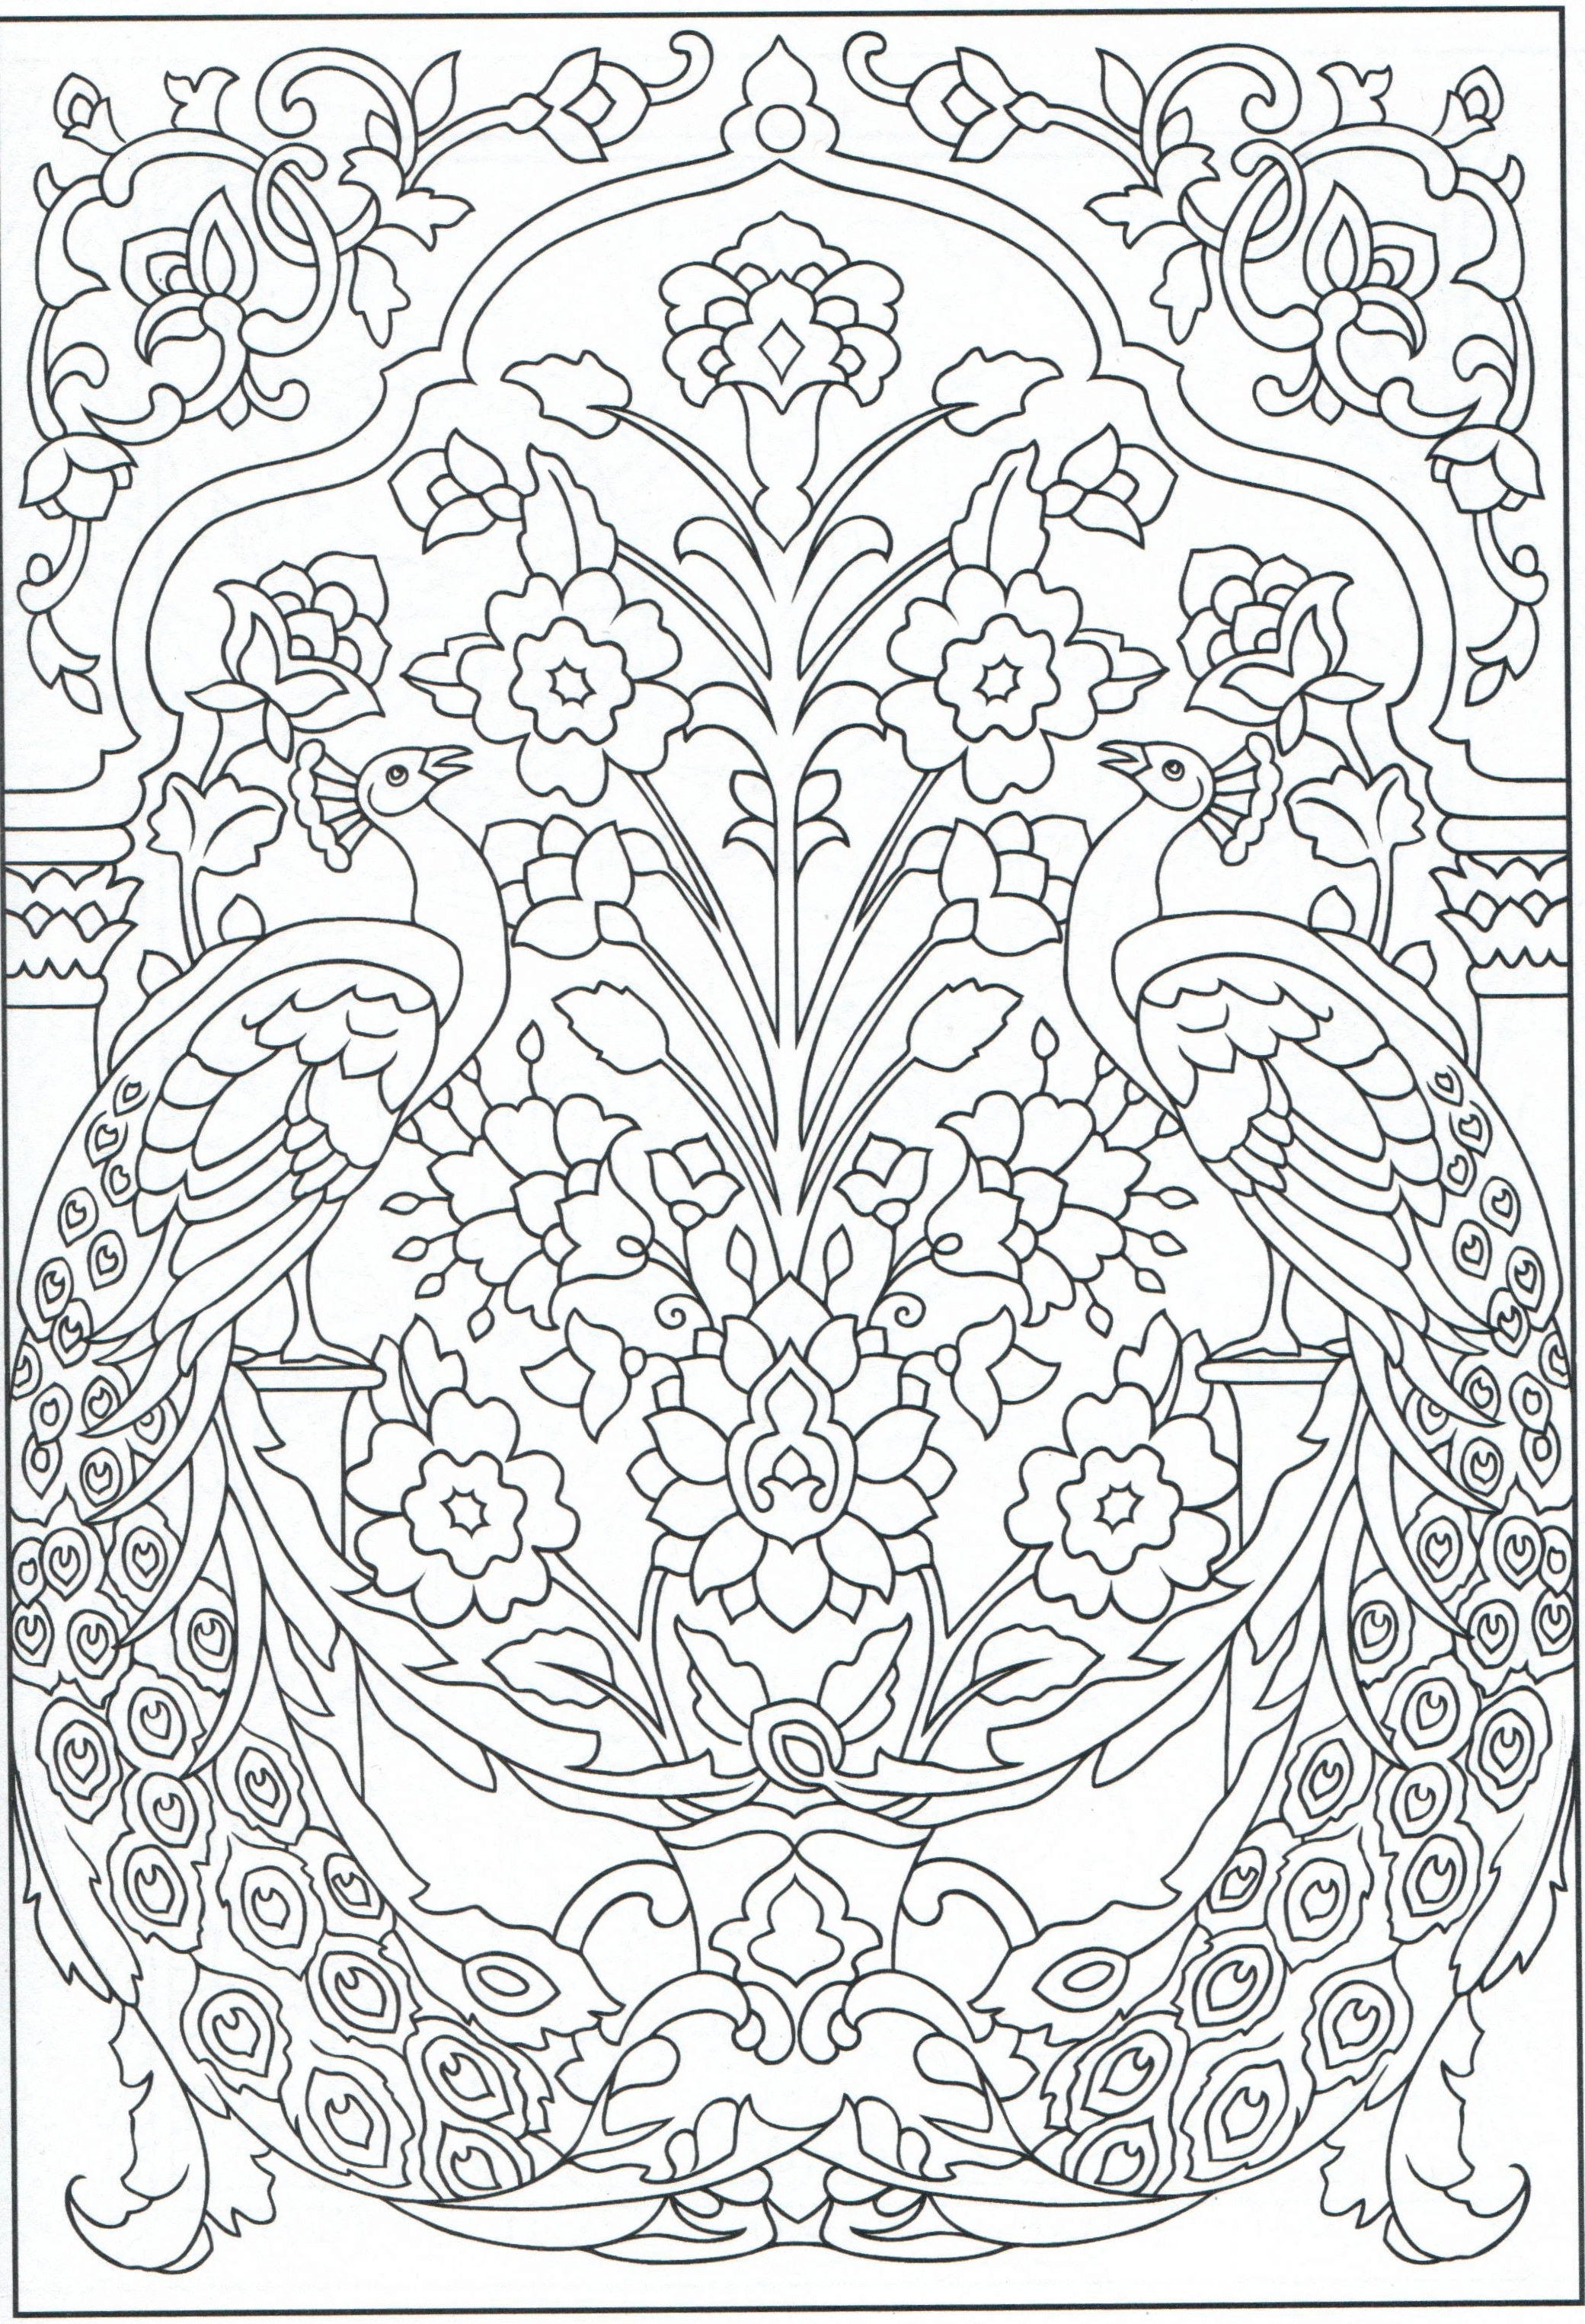 2081x3051 Peacock Coloring Pages For Adults Colouring In Funny Draw Image